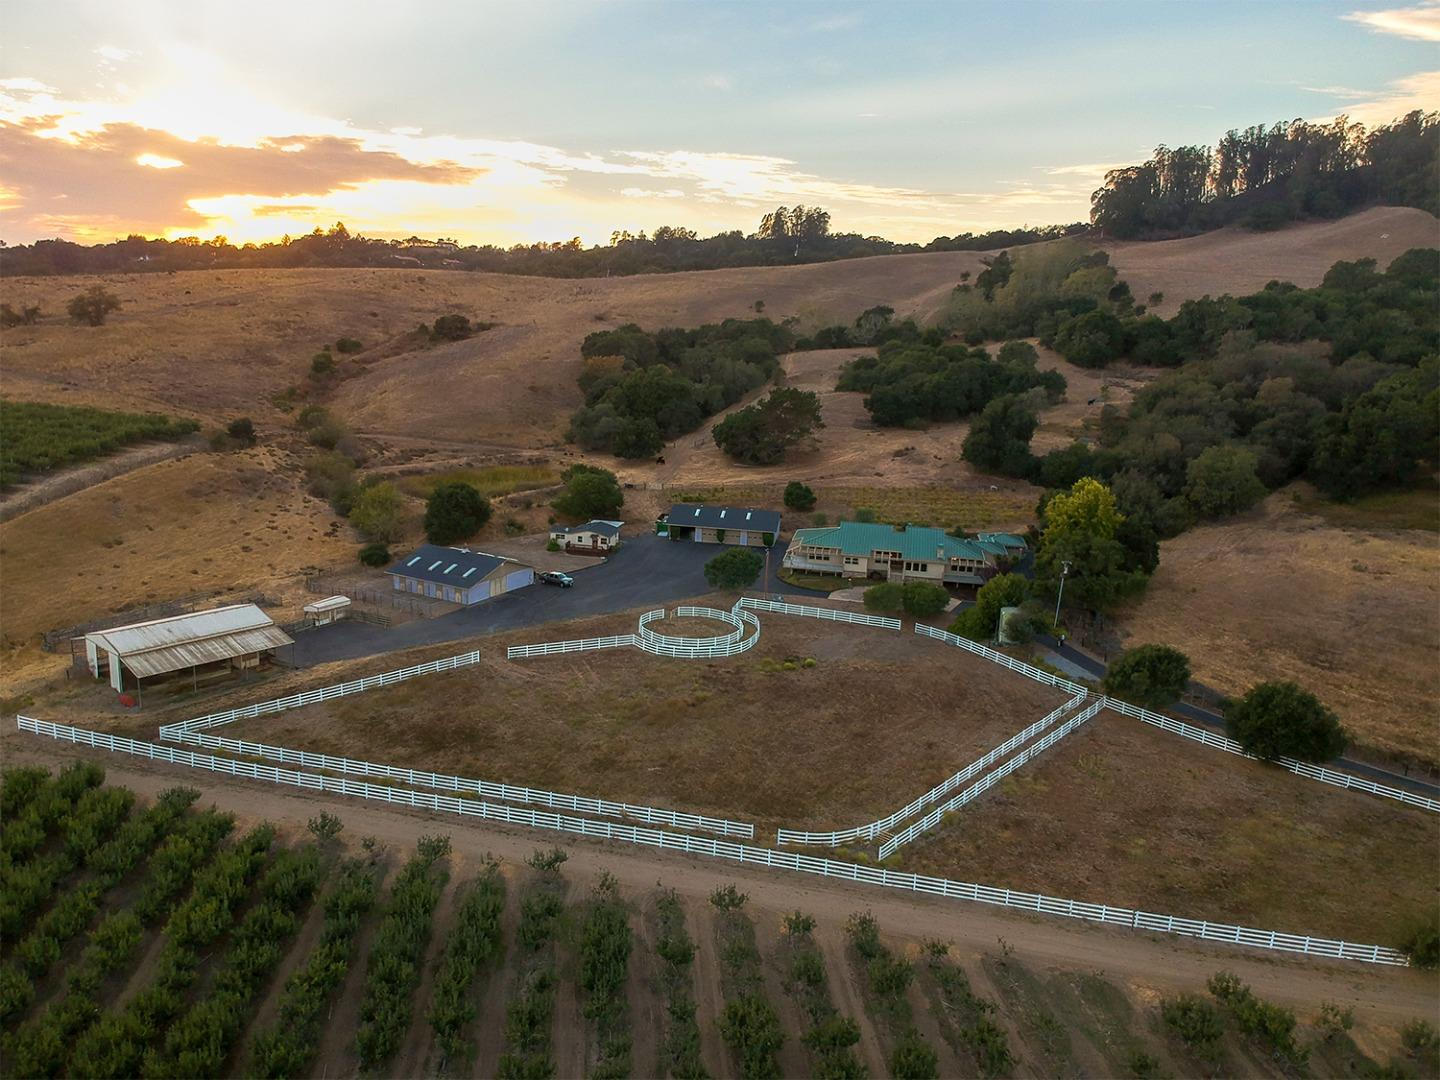 Welcome to the Dietrich Ranch.  Privately nestled in the foothills of the Santa Cruz Mountains, this secluded 191-acre private retreat awaits its new owner.  The preserve-like setting features a 31.6-acre apple orchard, equestrian facilities, small vineyard and plenty of open rangeland.  A private gated entrance and long driveway leads to the 3,940 sq. ft. custom home, which is tastefully appointed w/ a large kitchen, open floor plan w/ soaring ceilings, private office, 3 bedrooms, 3 ½ baths & two large outdoor porches, which will be enjoyed in this warm micro-climate.  A large 2,560 sq. ft. garage w/ 4 roll up doors offers abundant storage for your car collection or other hobby. A separate 1 bed, 1 bath guest house, horse barn w/ stables & hay barn round out the improvements.  This unique property, all within close proximity to Silicon Valley, Santa Cruz and the Monterey Peninsula, offers the rare chance to escape our busy schedules and recharge in solitude or with friends and family.